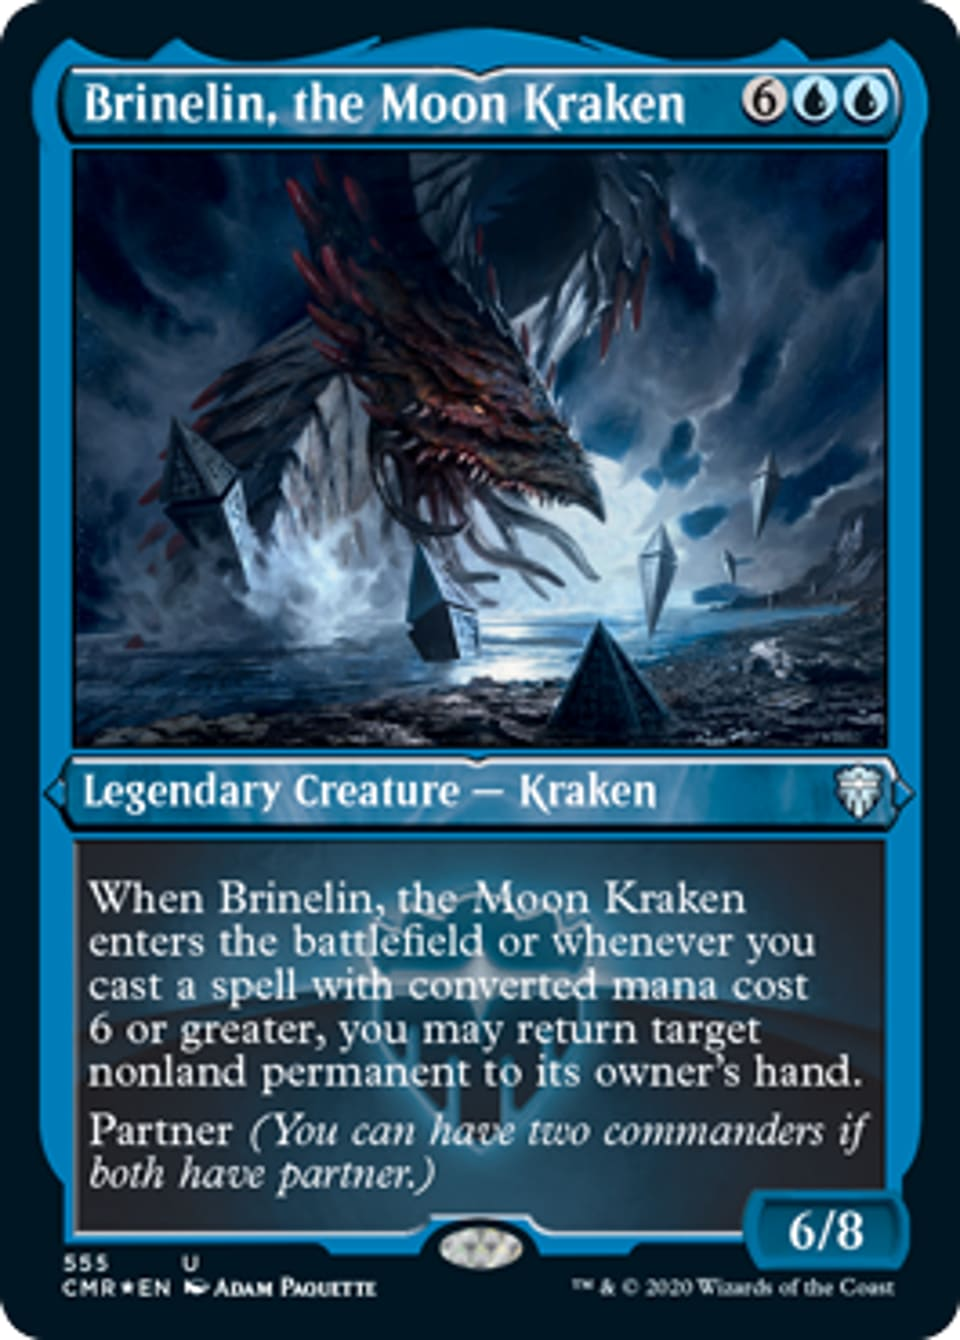 Brinelin, the Moon Kraken